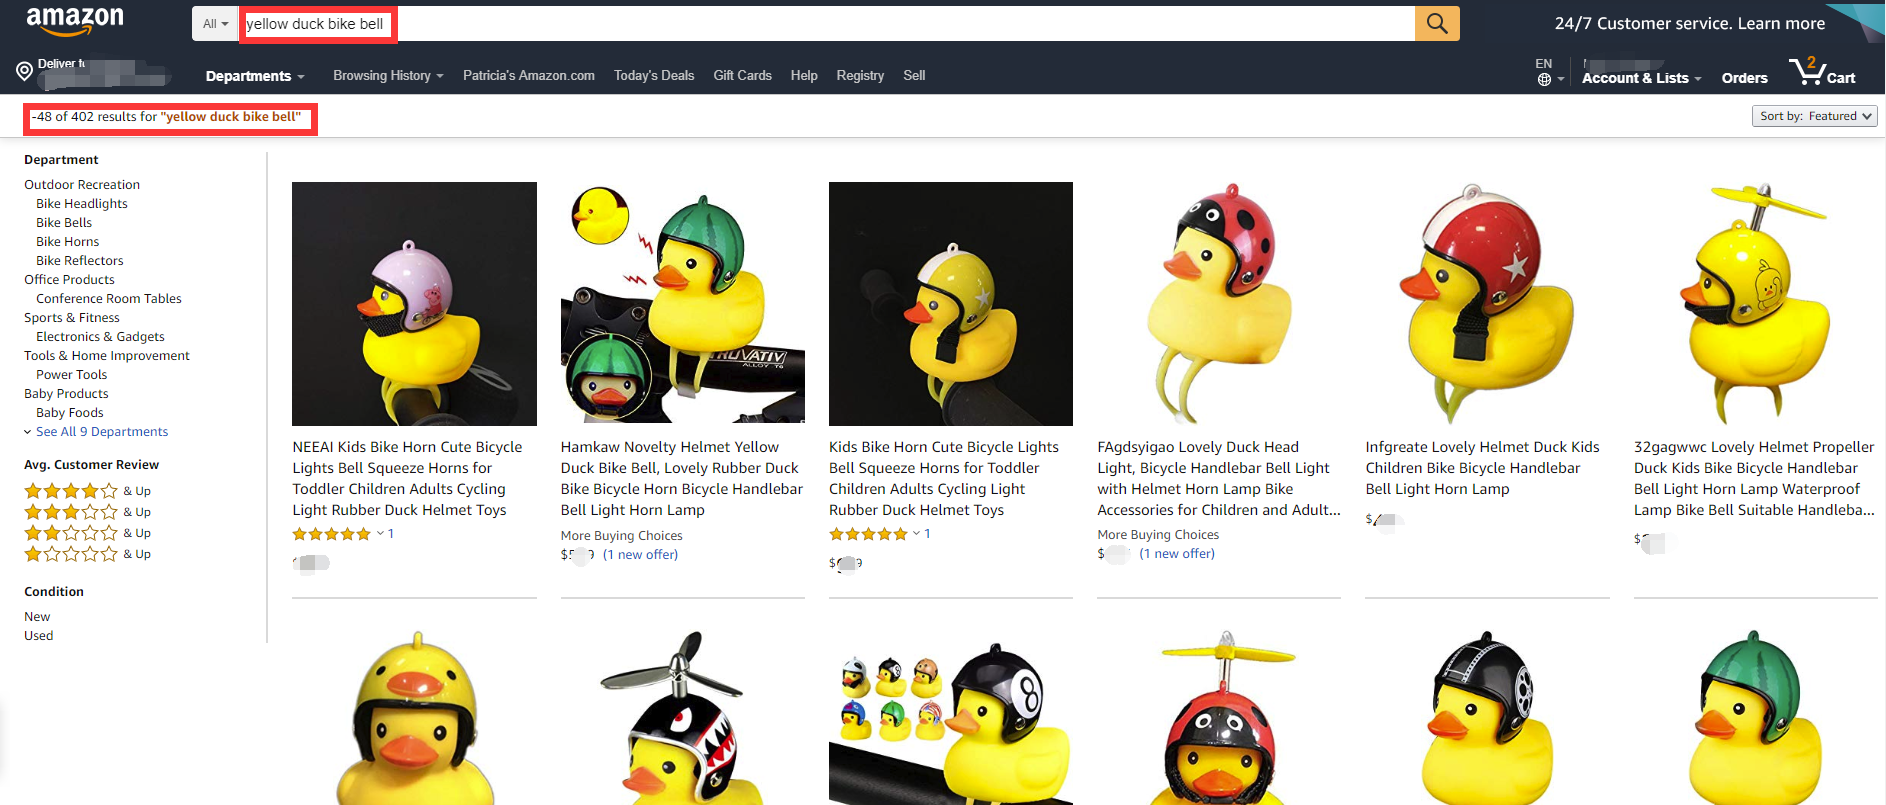 yellow duck in amazon